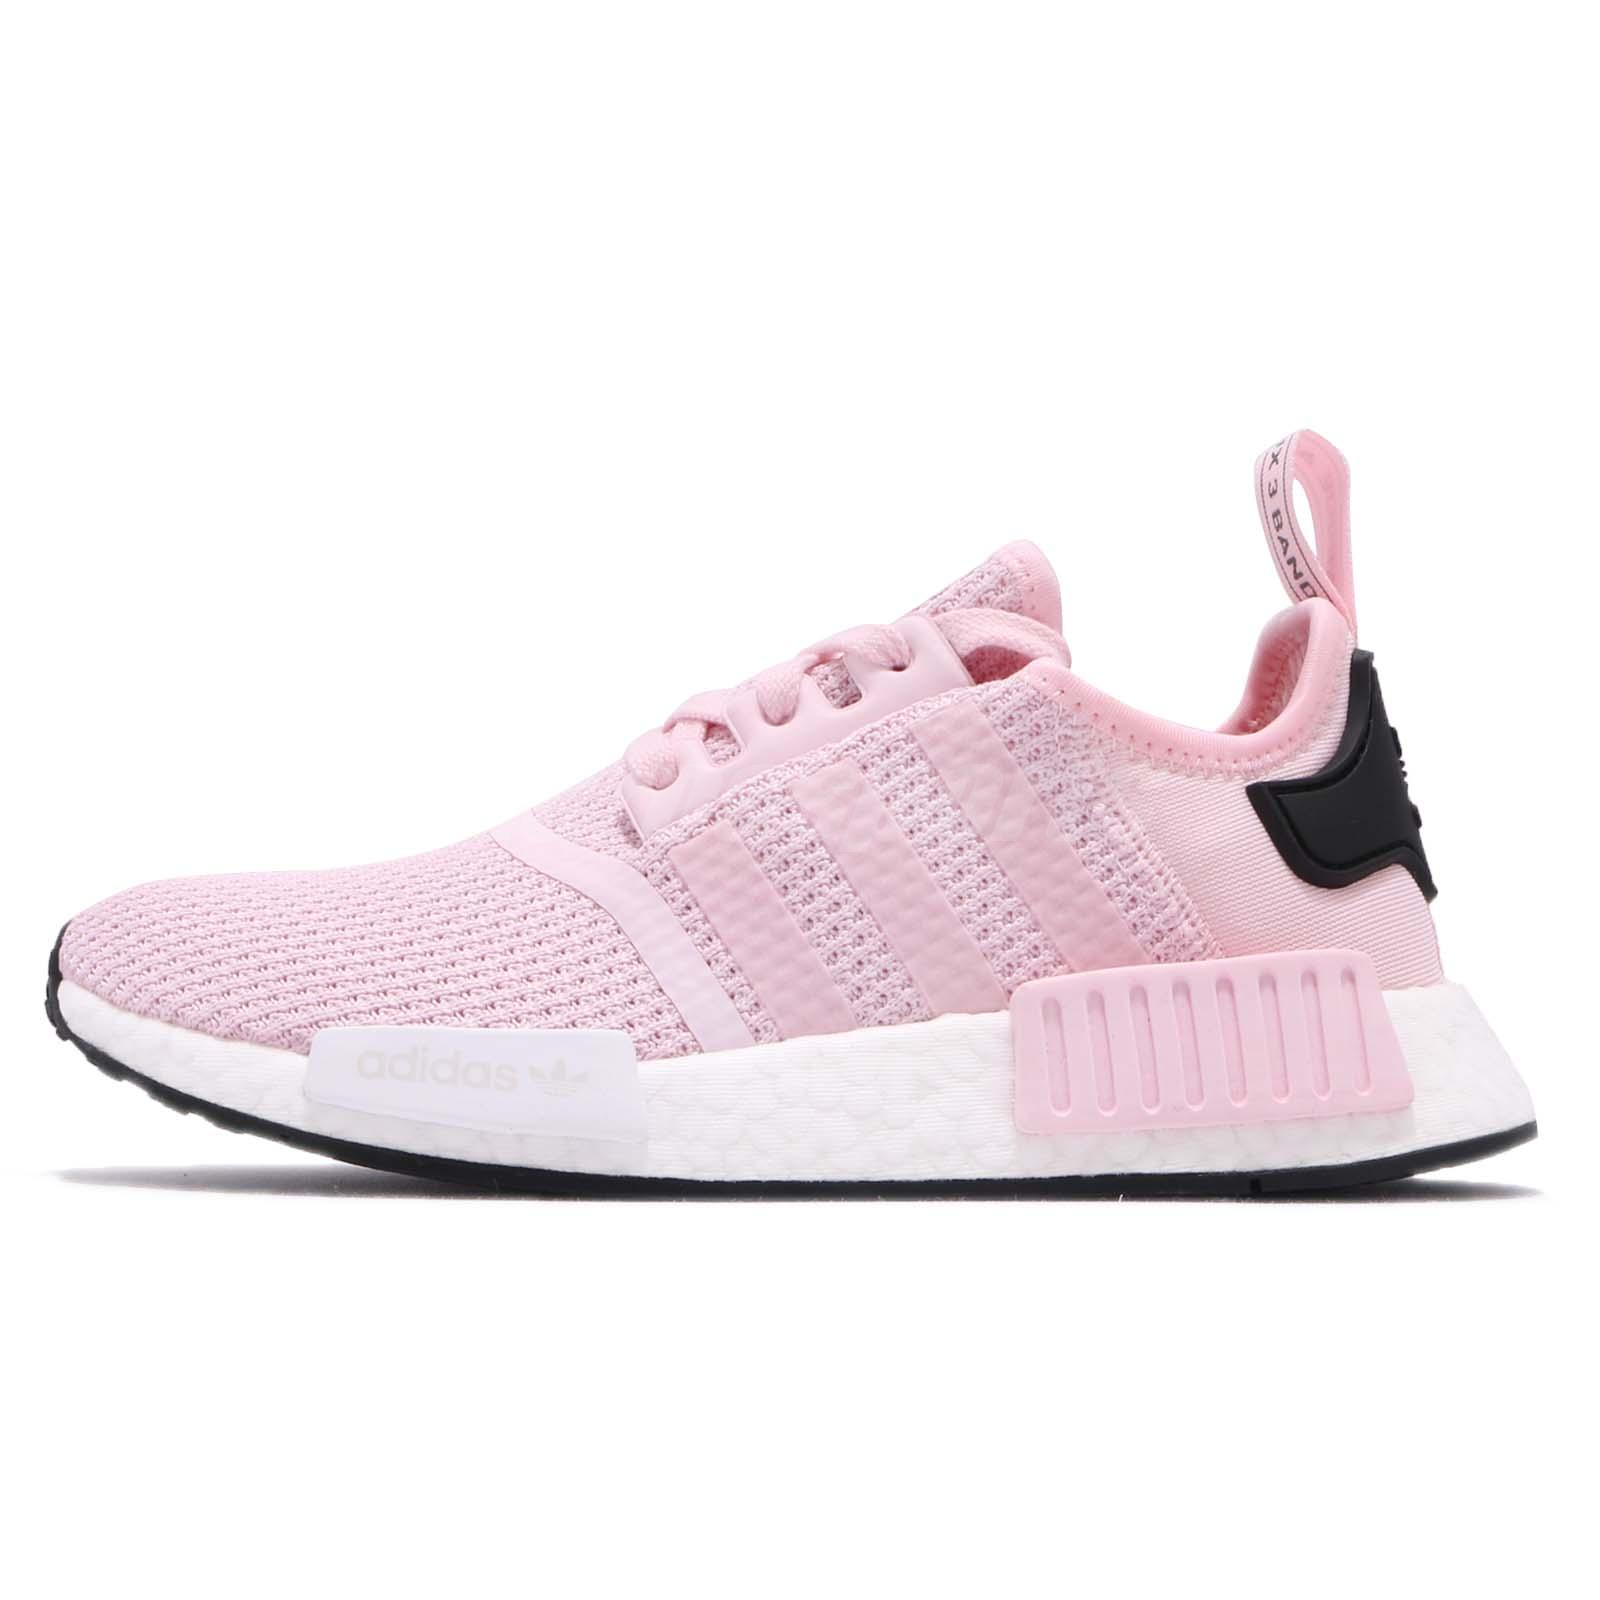 6003100a05f9 adidas Originals NMD R1 W Boost Pink White Black Women Running Shoes B37648